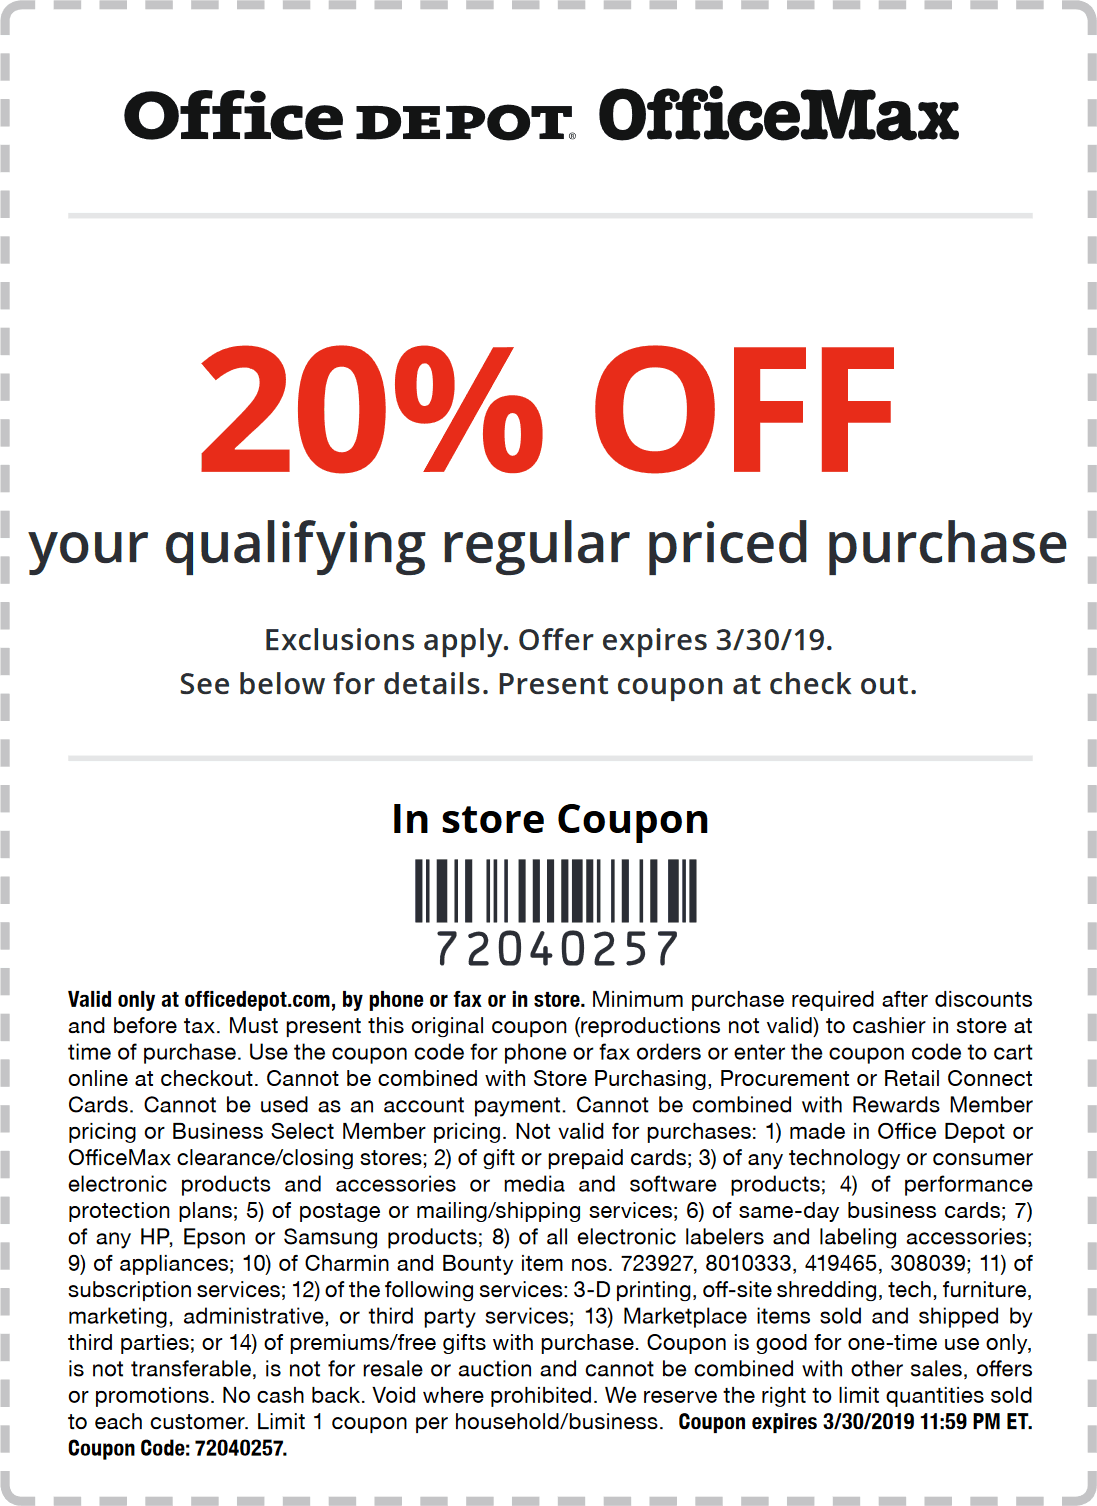 Office Depot Coupon August 2020 20% off at Office Depot & OfficeMax, or online via promo code 72040257